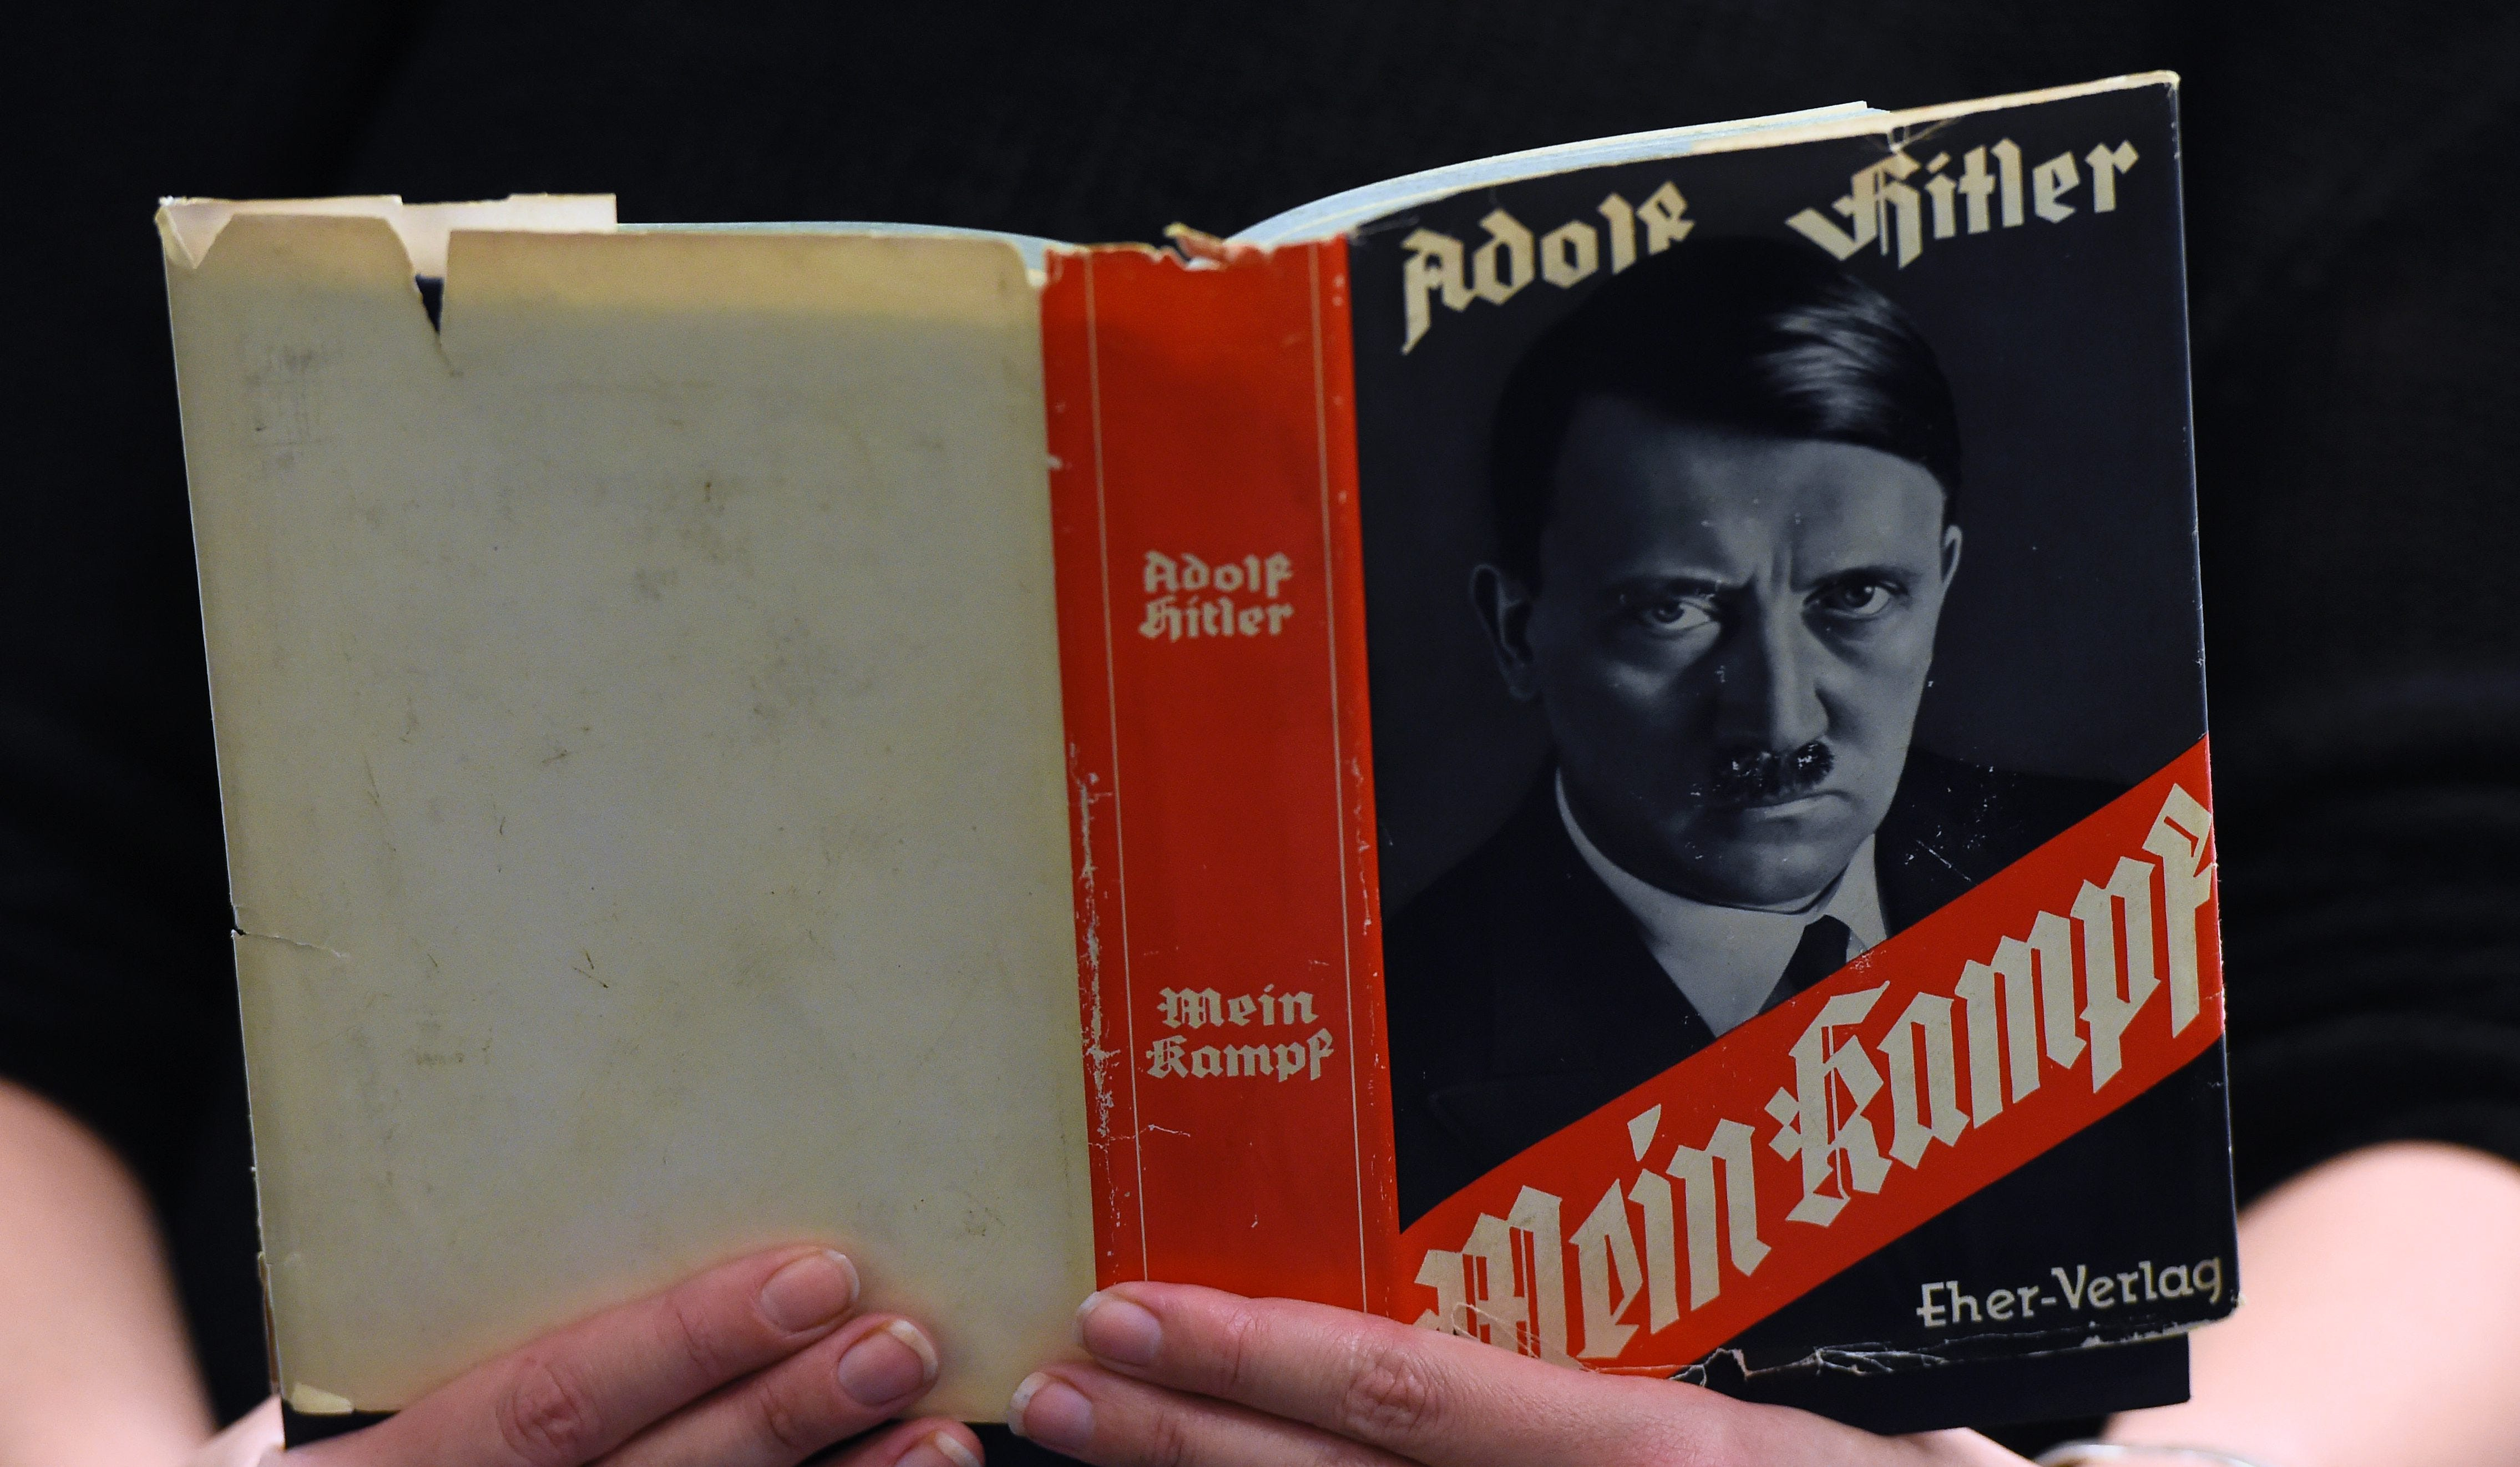 The return of Mein Kampf to Hitler 100